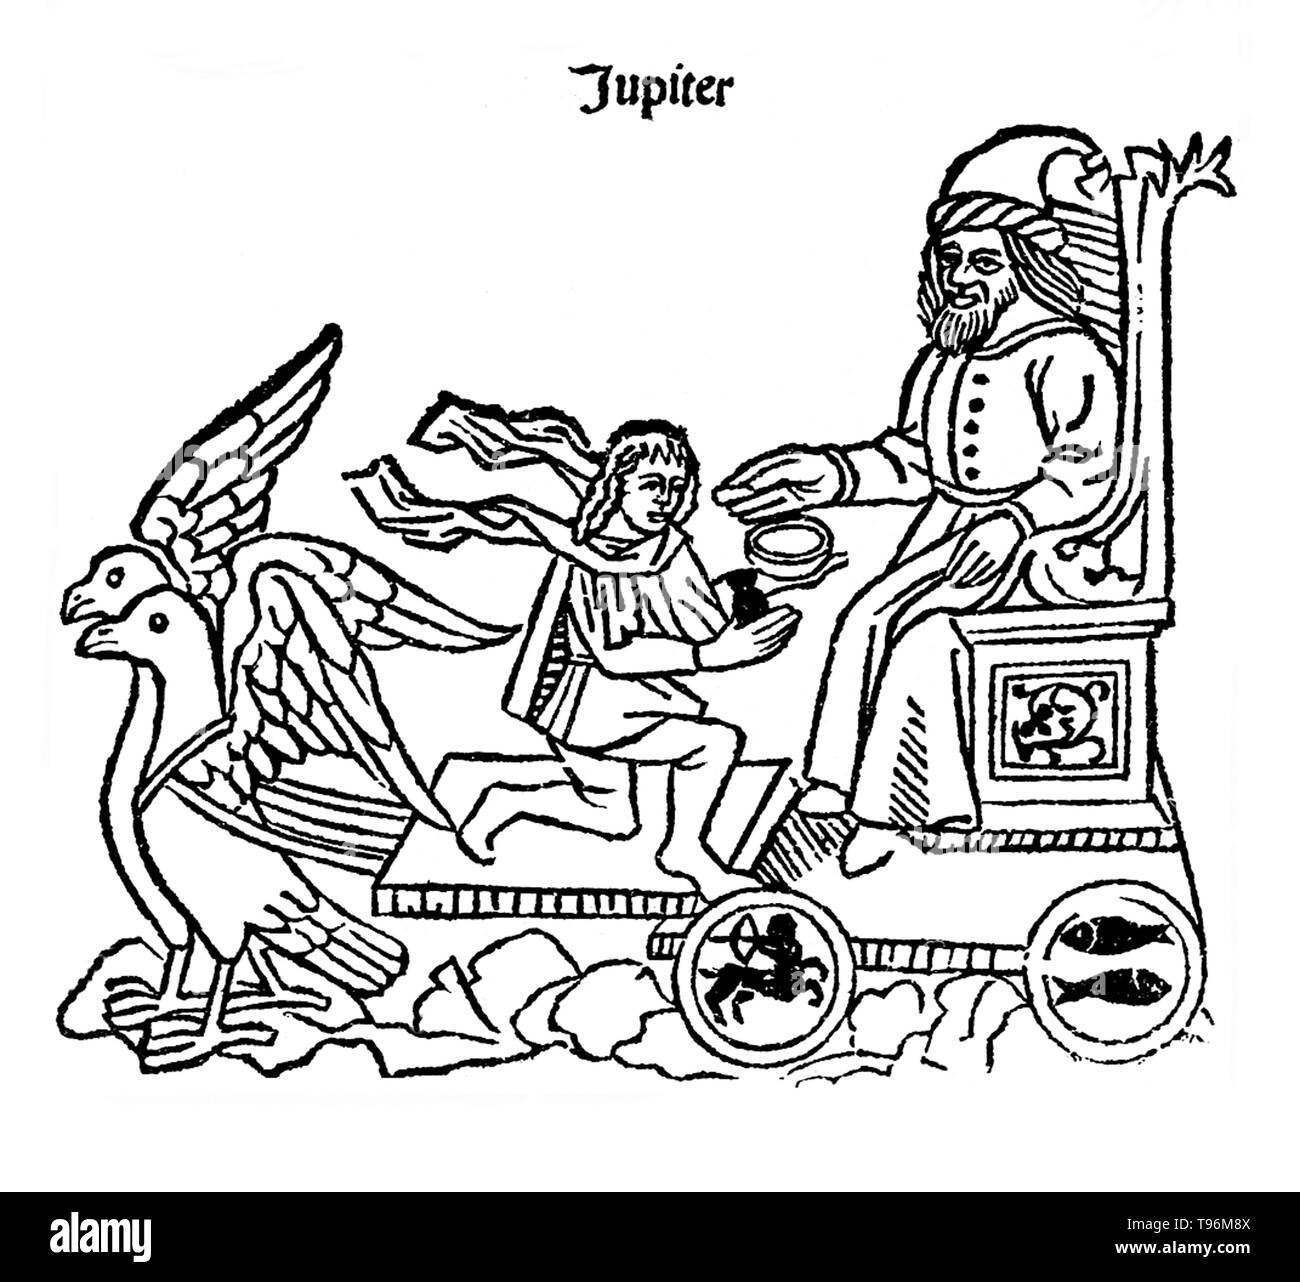 Jupiter in his chariot, drawn by a pair of eagles. In ancient Roman religion and myth, Jupiter or Jove is the king of the gods and the god of sky and thunder. Jupiter was the chief deity of Roman state religion throughout the Republican and Imperial eras, until Christianity became the dominant religion of the Empire. He is usually thought to have originated as a sky god. His identifying implement is the thunderbolt, and his primary sacred animal is the eagle, which held precedence over other birds in the taking of auspices and became one of the most common symbols of the Roman army. The Romans - Stock Image